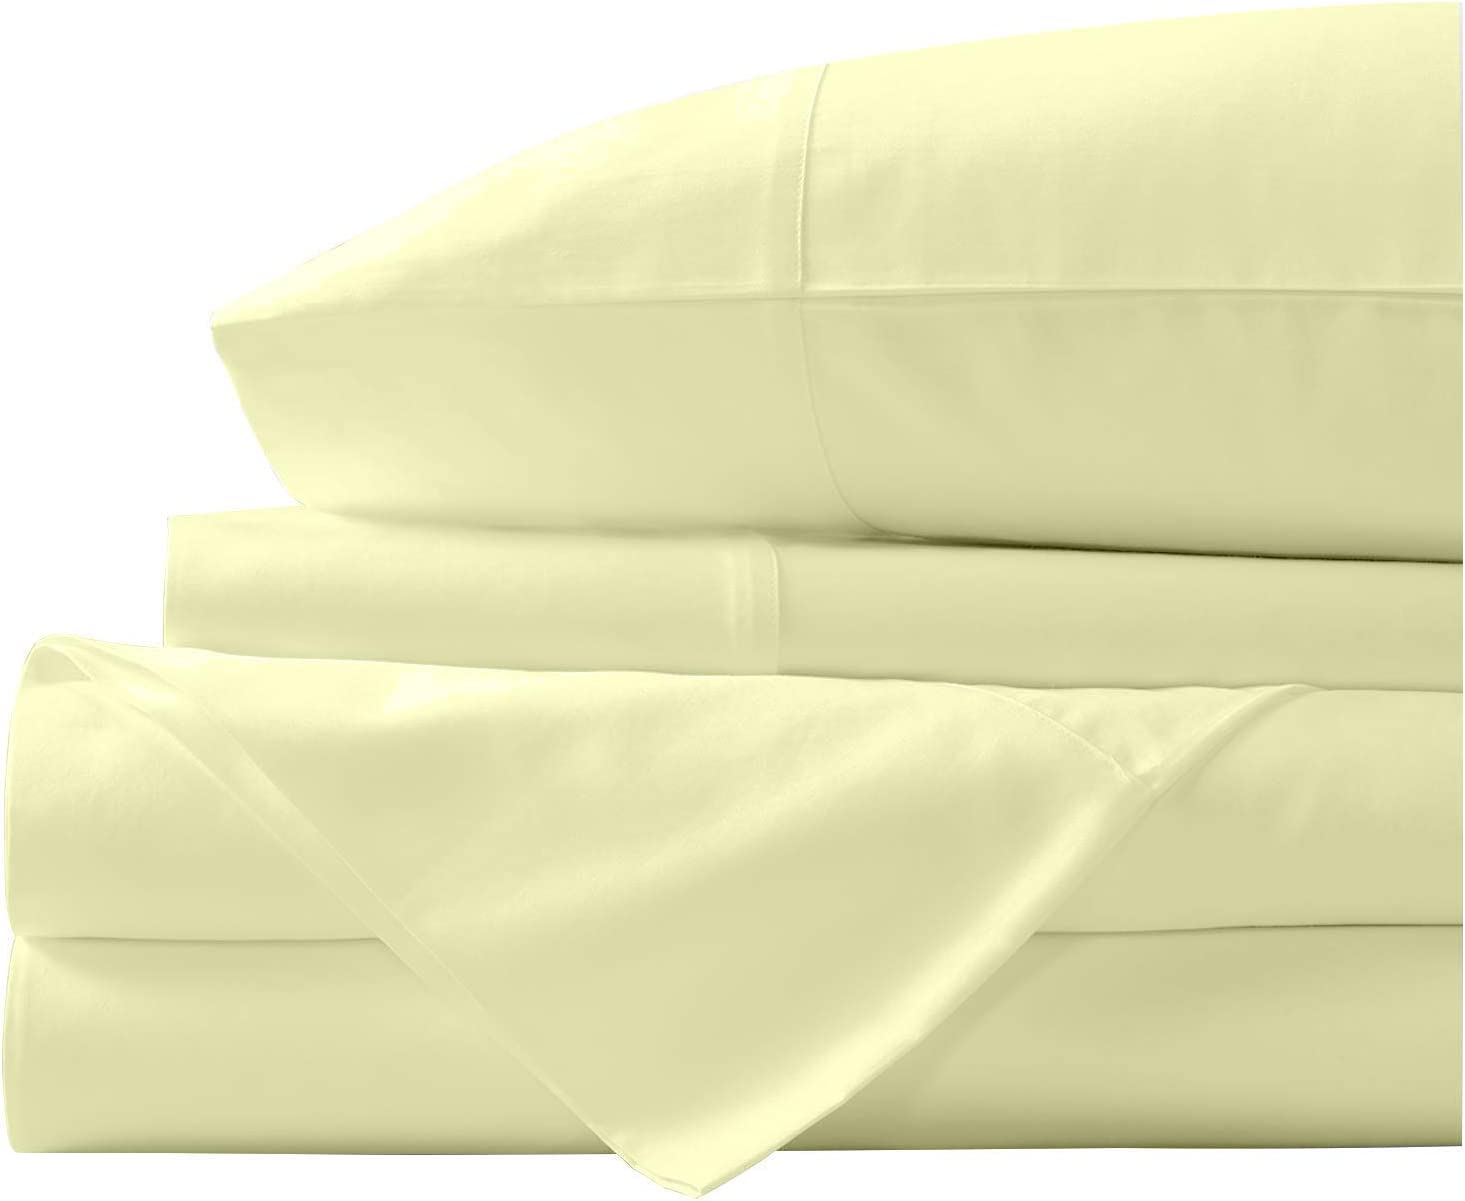 LINENSCAPE 100% Egyptian Cotton Sheets Twin Size, 600 Thread Count Twin Sheets Set, 4 Piece Ivory Bed Sheets, 14 inch Deep Pocket, Sateen Weave, Extra Soft Luxurious Sheets Set